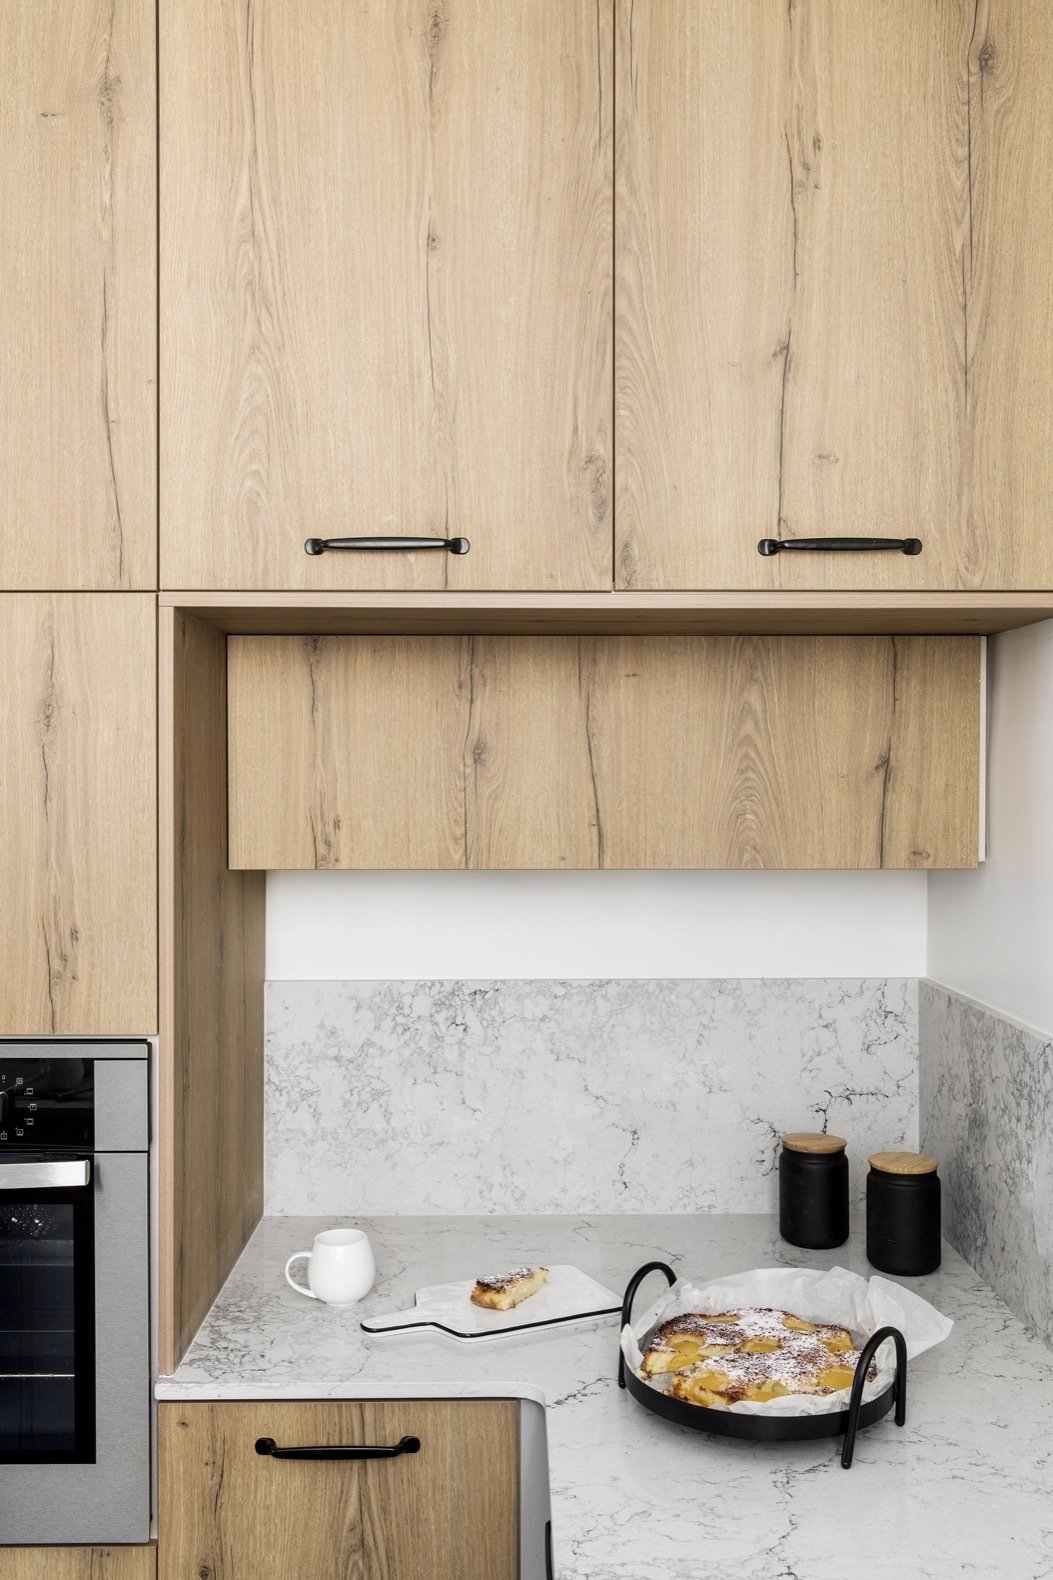 Kitchen, Wall Oven, Engineered Quartz Counter, Porcelain Tile Floor, and Wood Cabinet The kitchen countertops are quartz, and the cabinets are Formica.  Photo 6 of 21 in Budget Breakdown: A Stunning Apartment Revamp Mixes High and Low For Under $100K